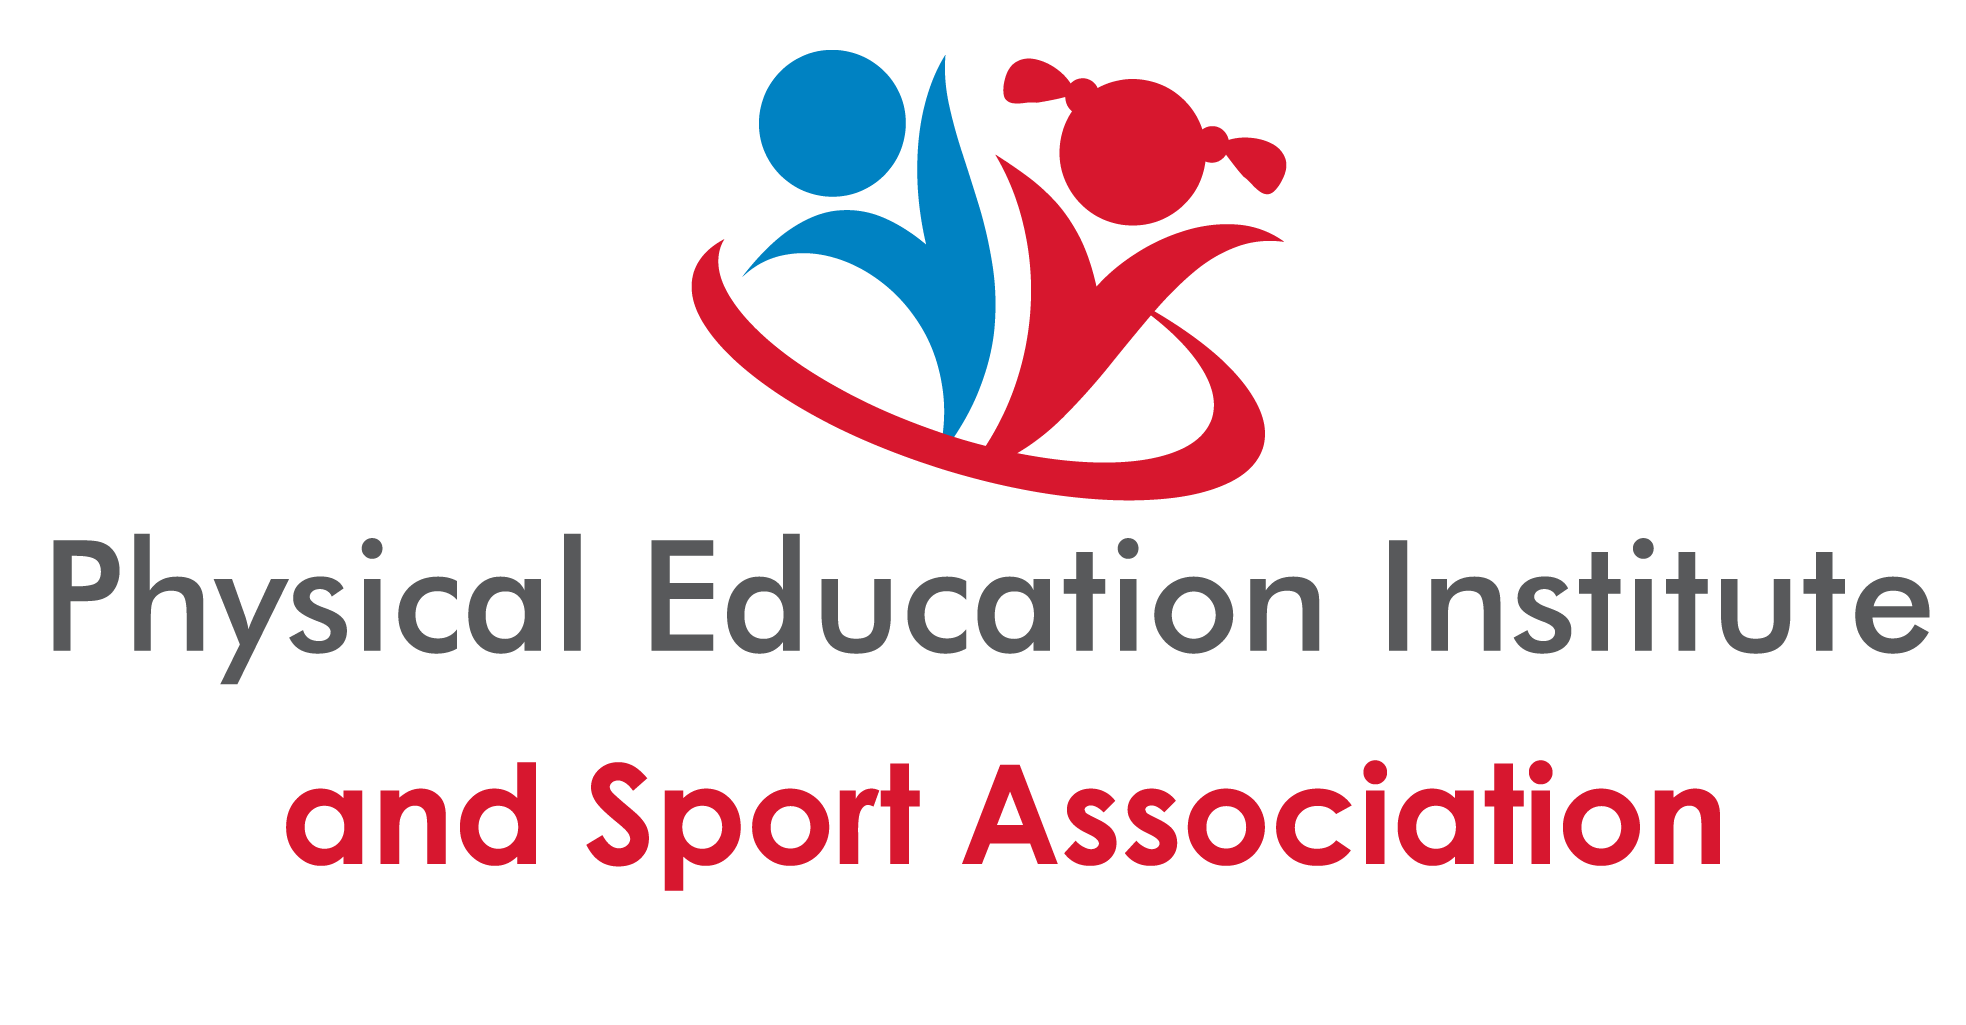 Physical Education Institute and Sport Association